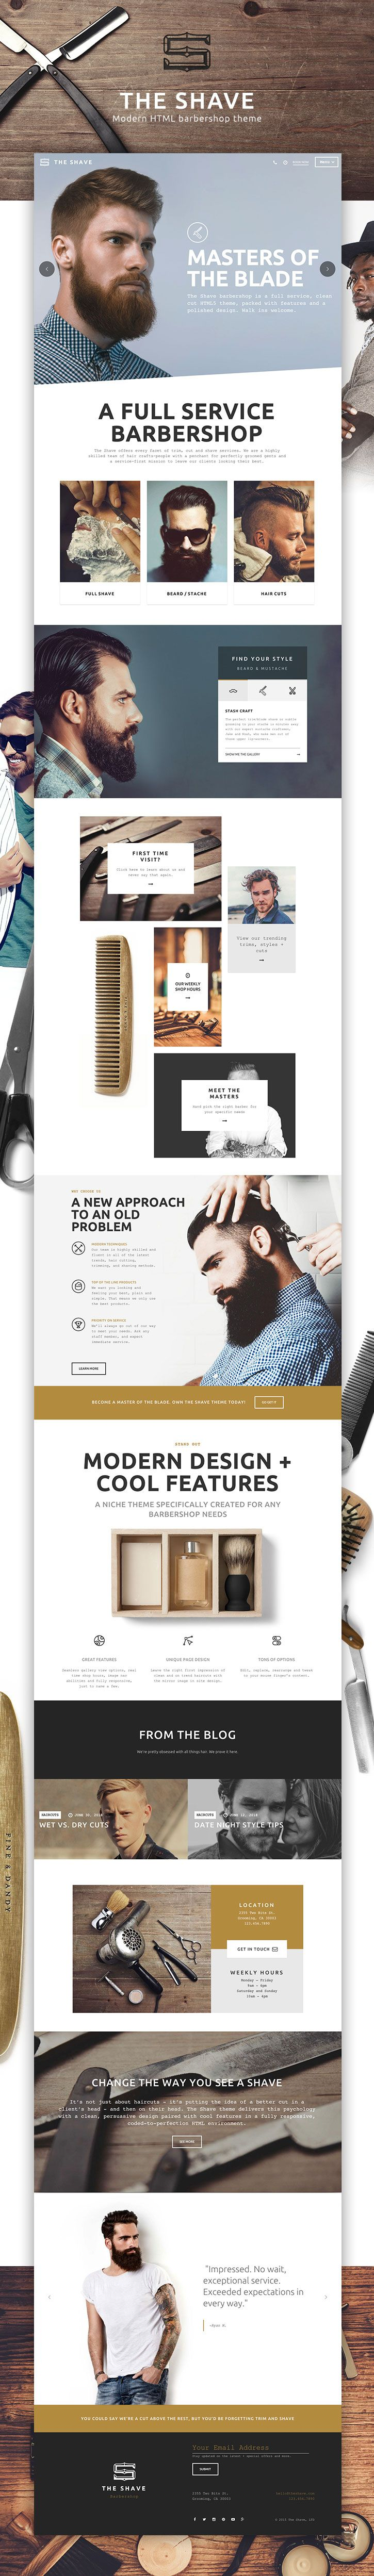 This aint your grand daddy's barbershop! Details here: http://themeforest.net/item/the-shave-barbershop-clean-cut-html-template/14051002?ref=everytuesday